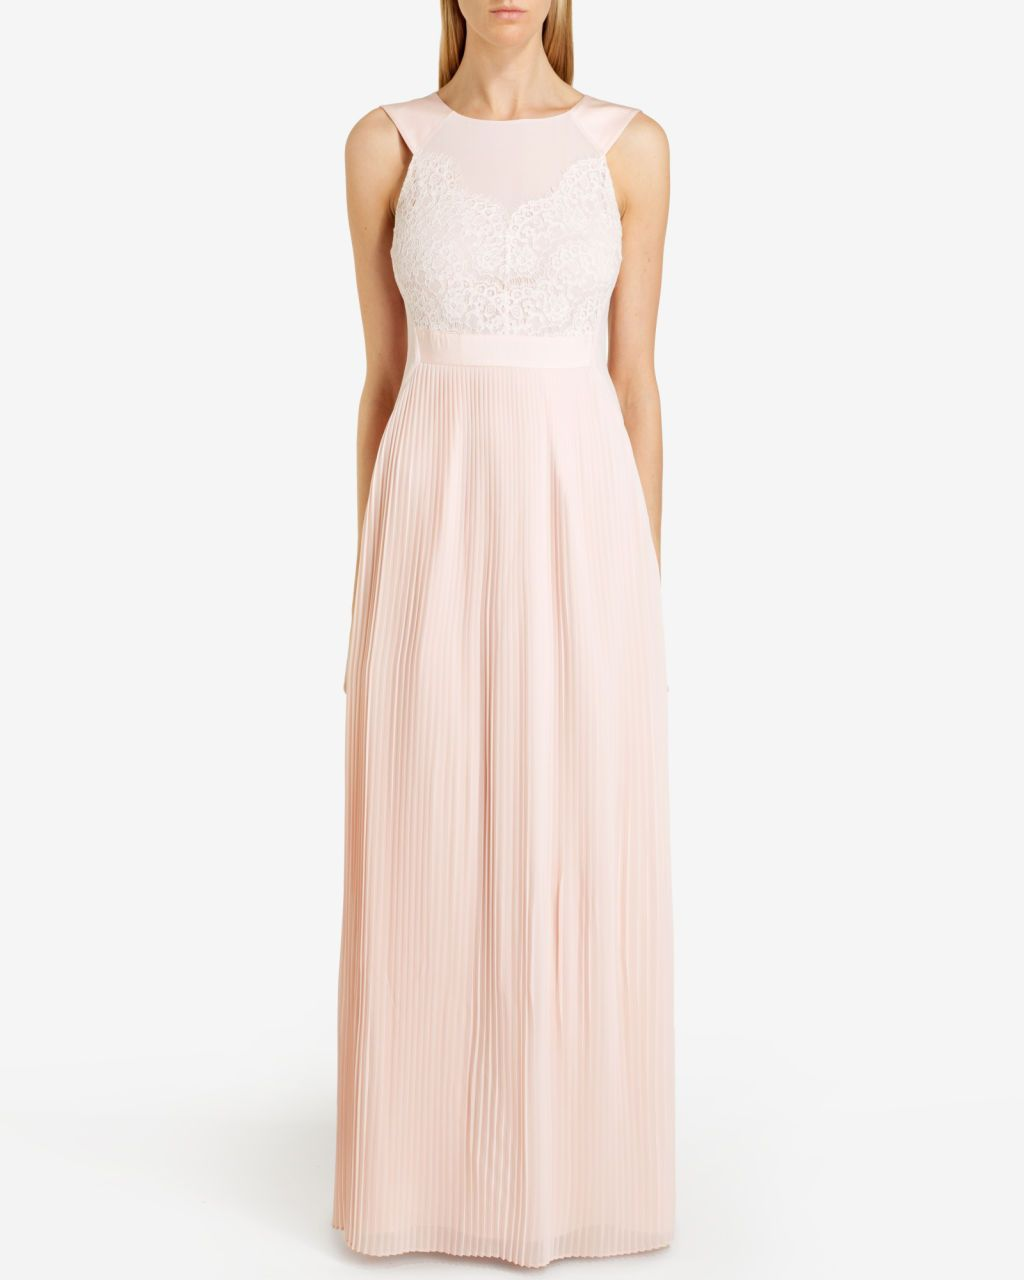 Reversible pleated maxi dress nude pink outlet ted baker uk reversible pleated maxi dress nude pink outlet ted baker uk ombrellifo Image collections